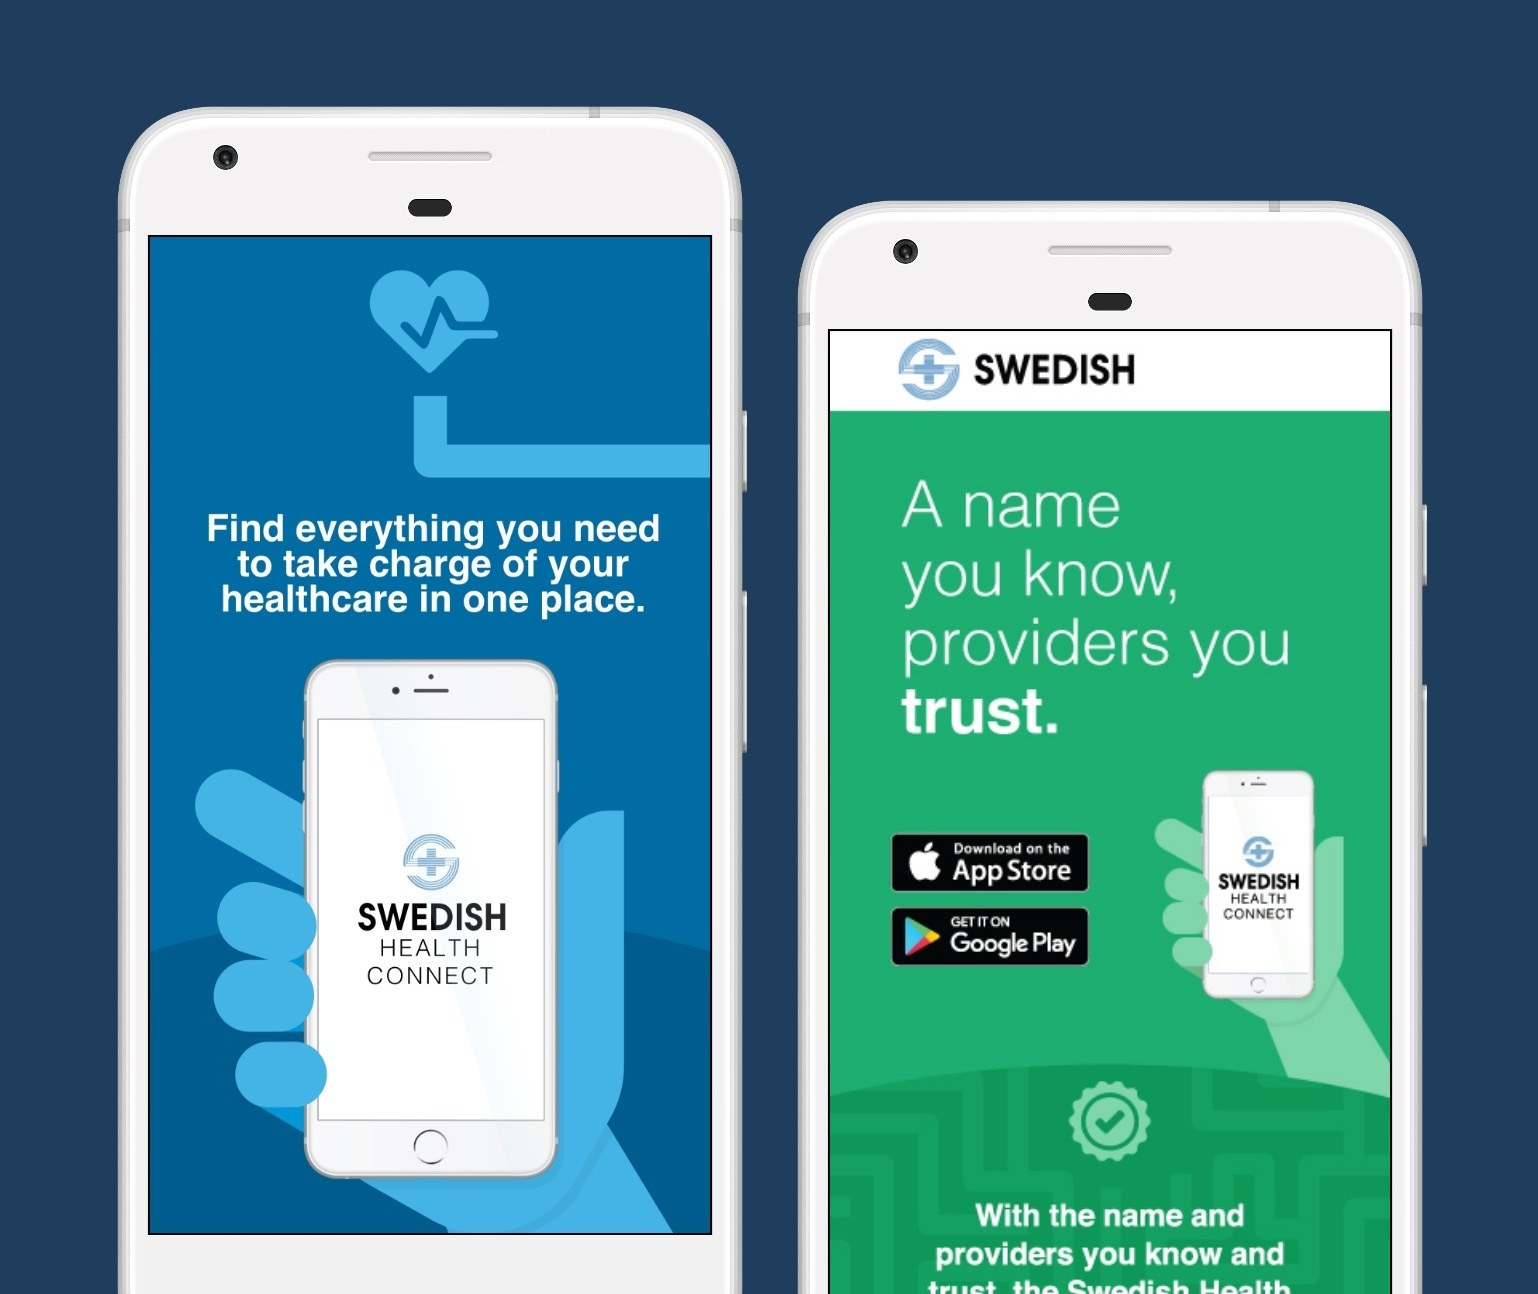 Illustration of two mobile phone screens showing advertisements to download and use the Swedish Health Connect App.